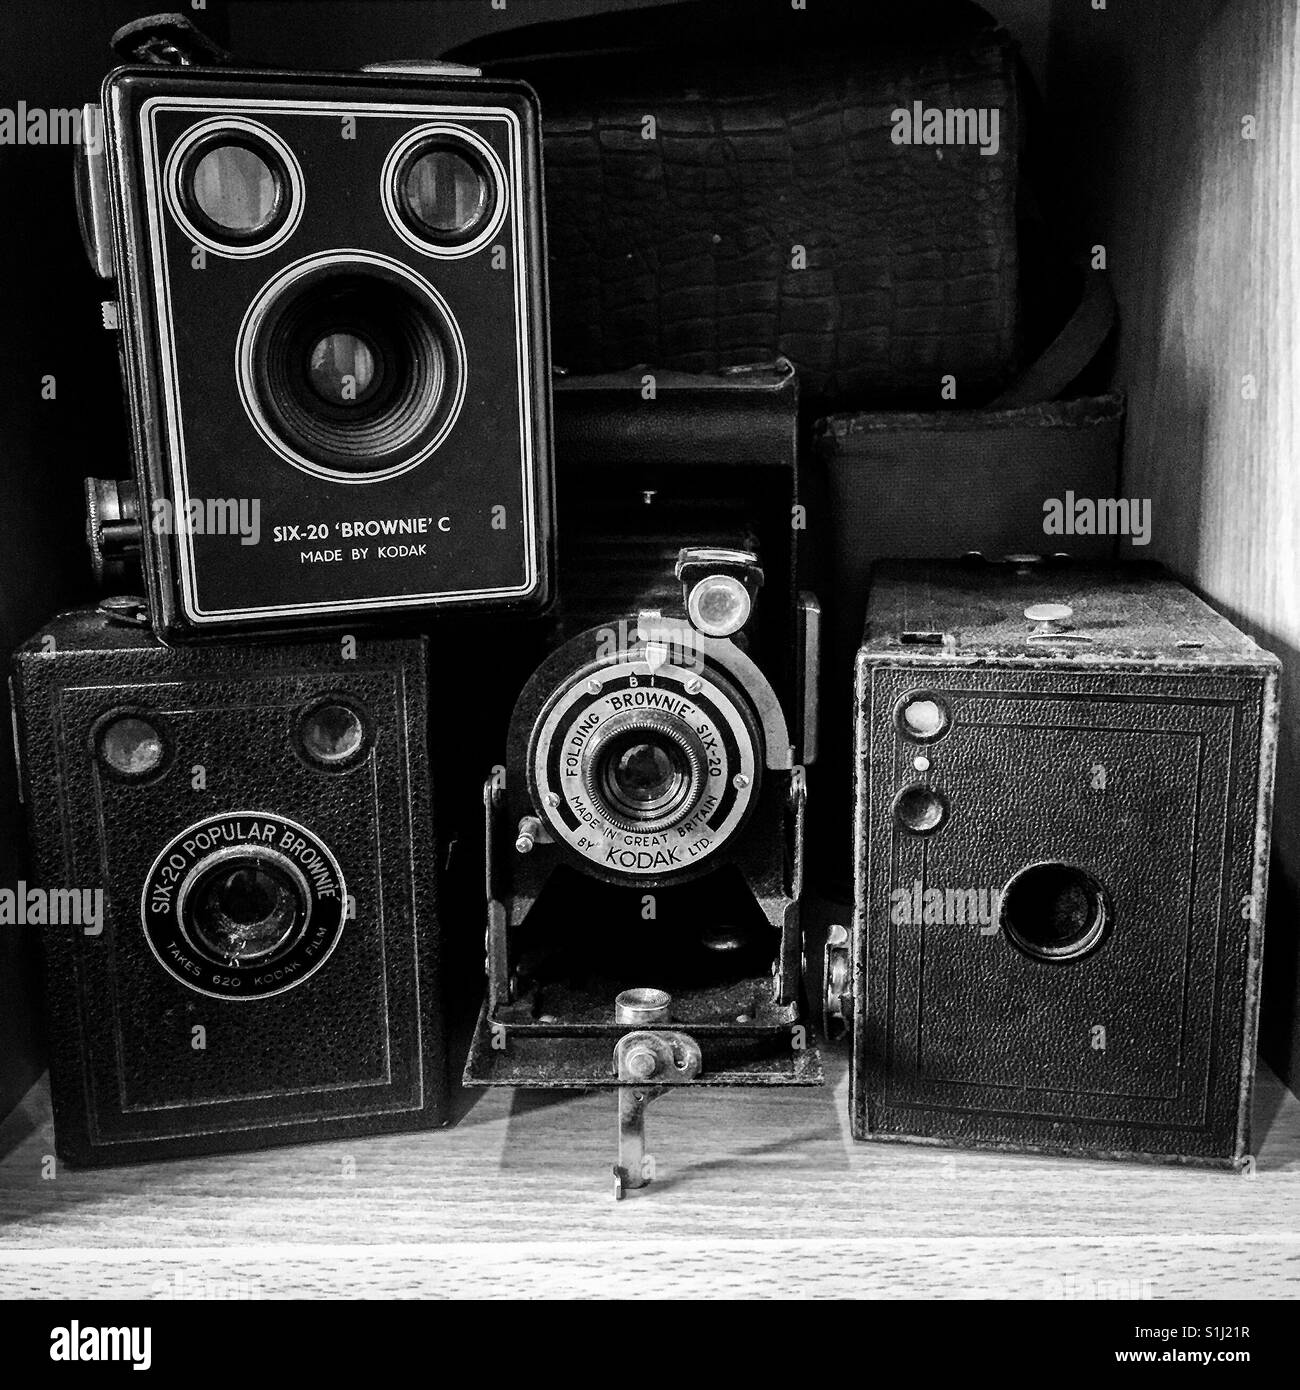 Vintage camera collection - Stock Image